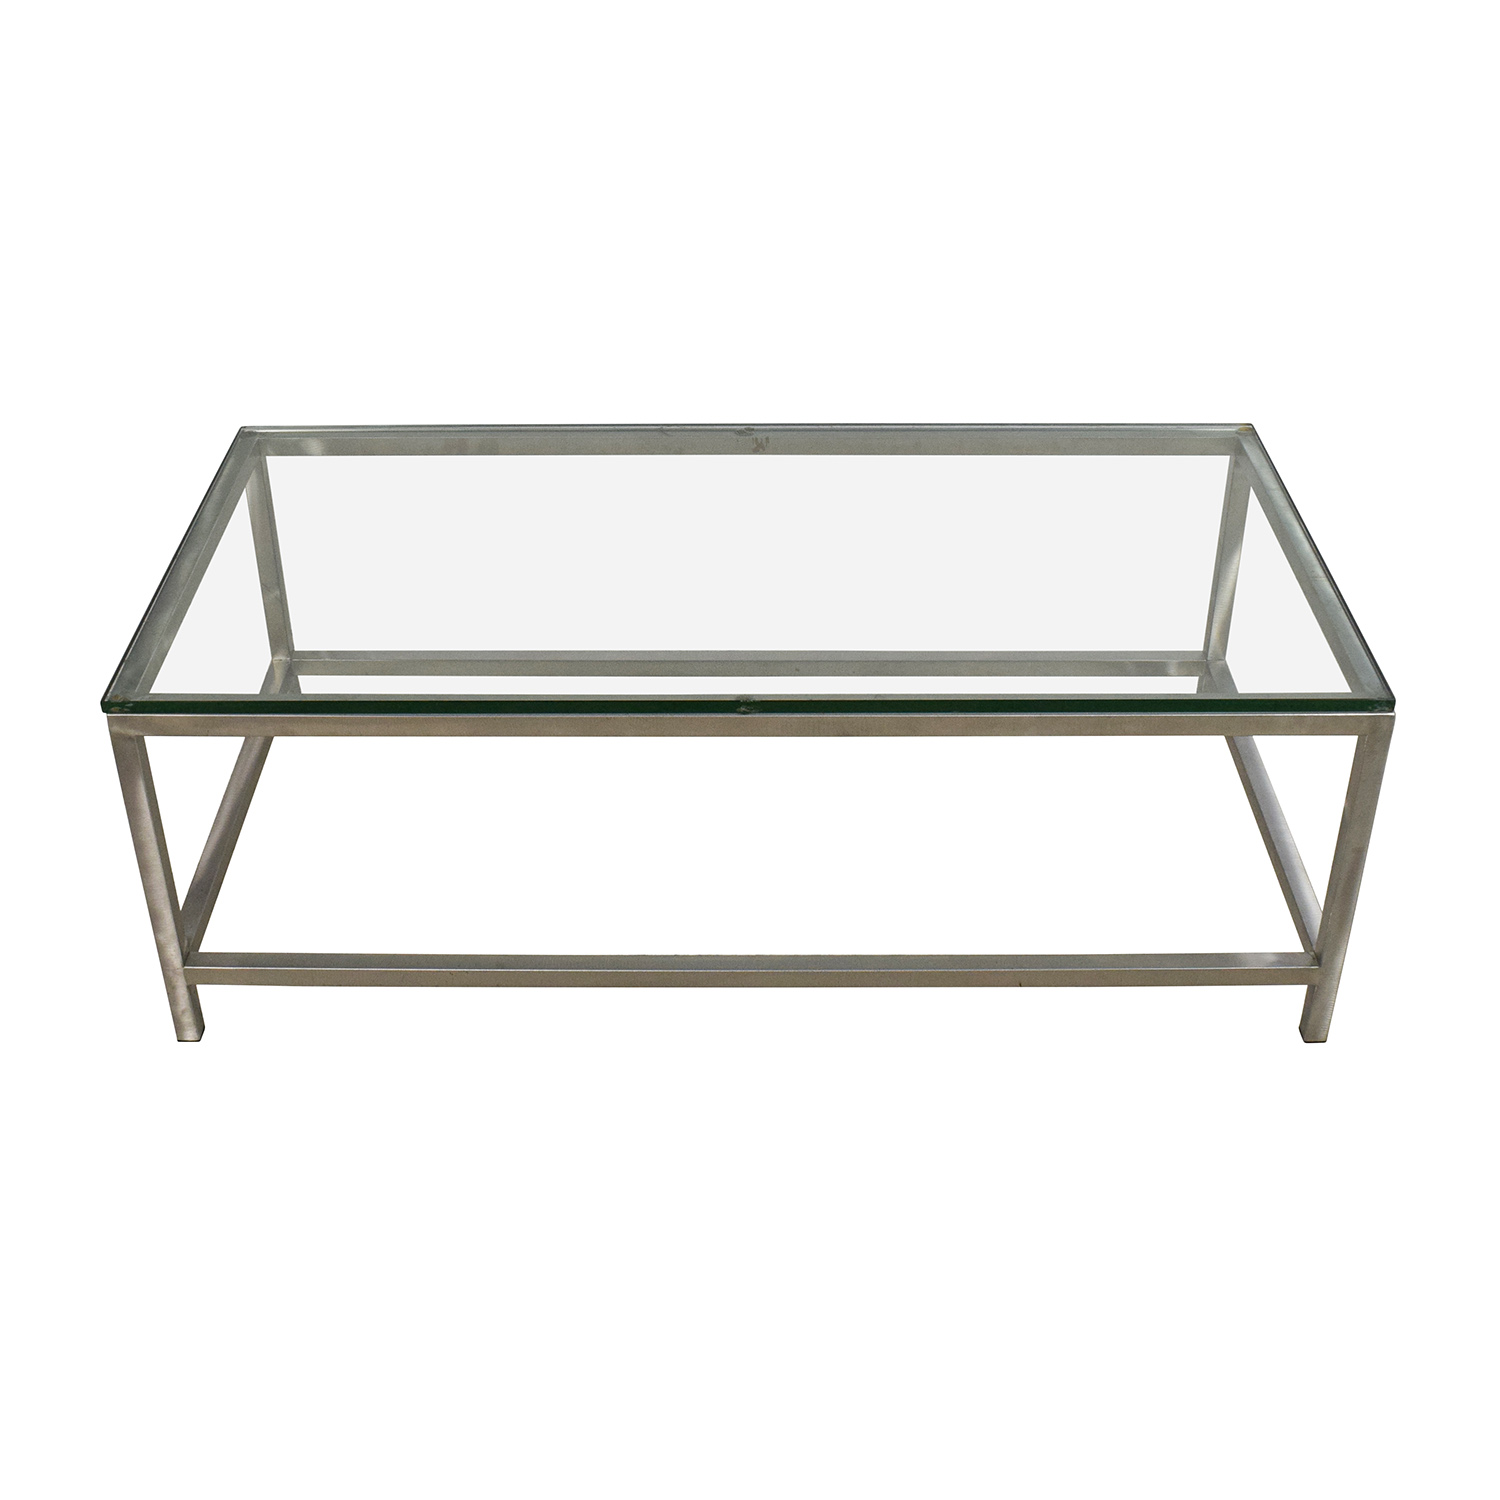 Rectangular glass top coffee table latest car engine for Rectangular coffee table with glass top